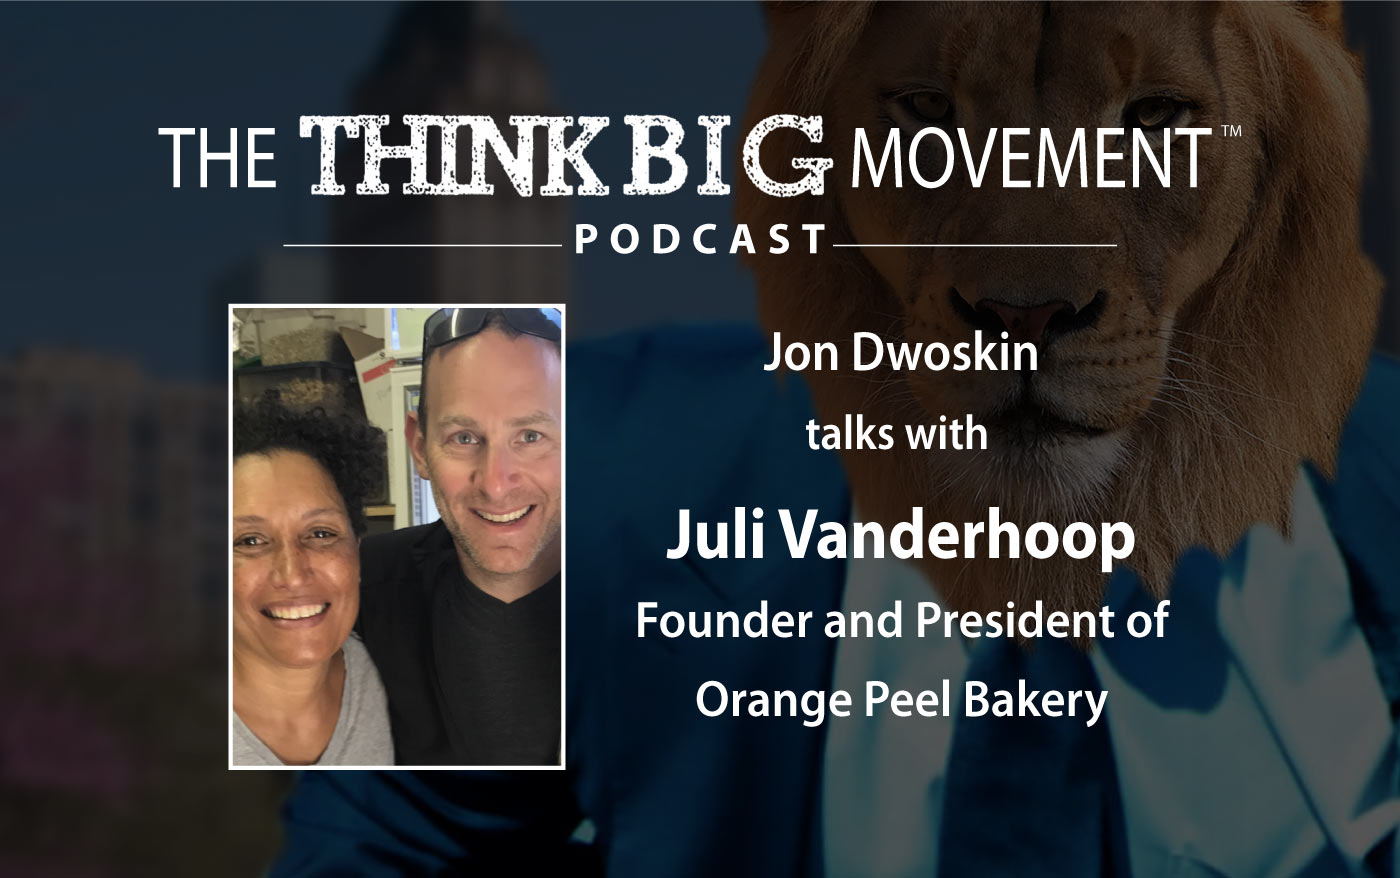 Think Big Movement Podcast - Jon Dwoskin Interviews Julie Vanderhoop, Orange Peel Bakery